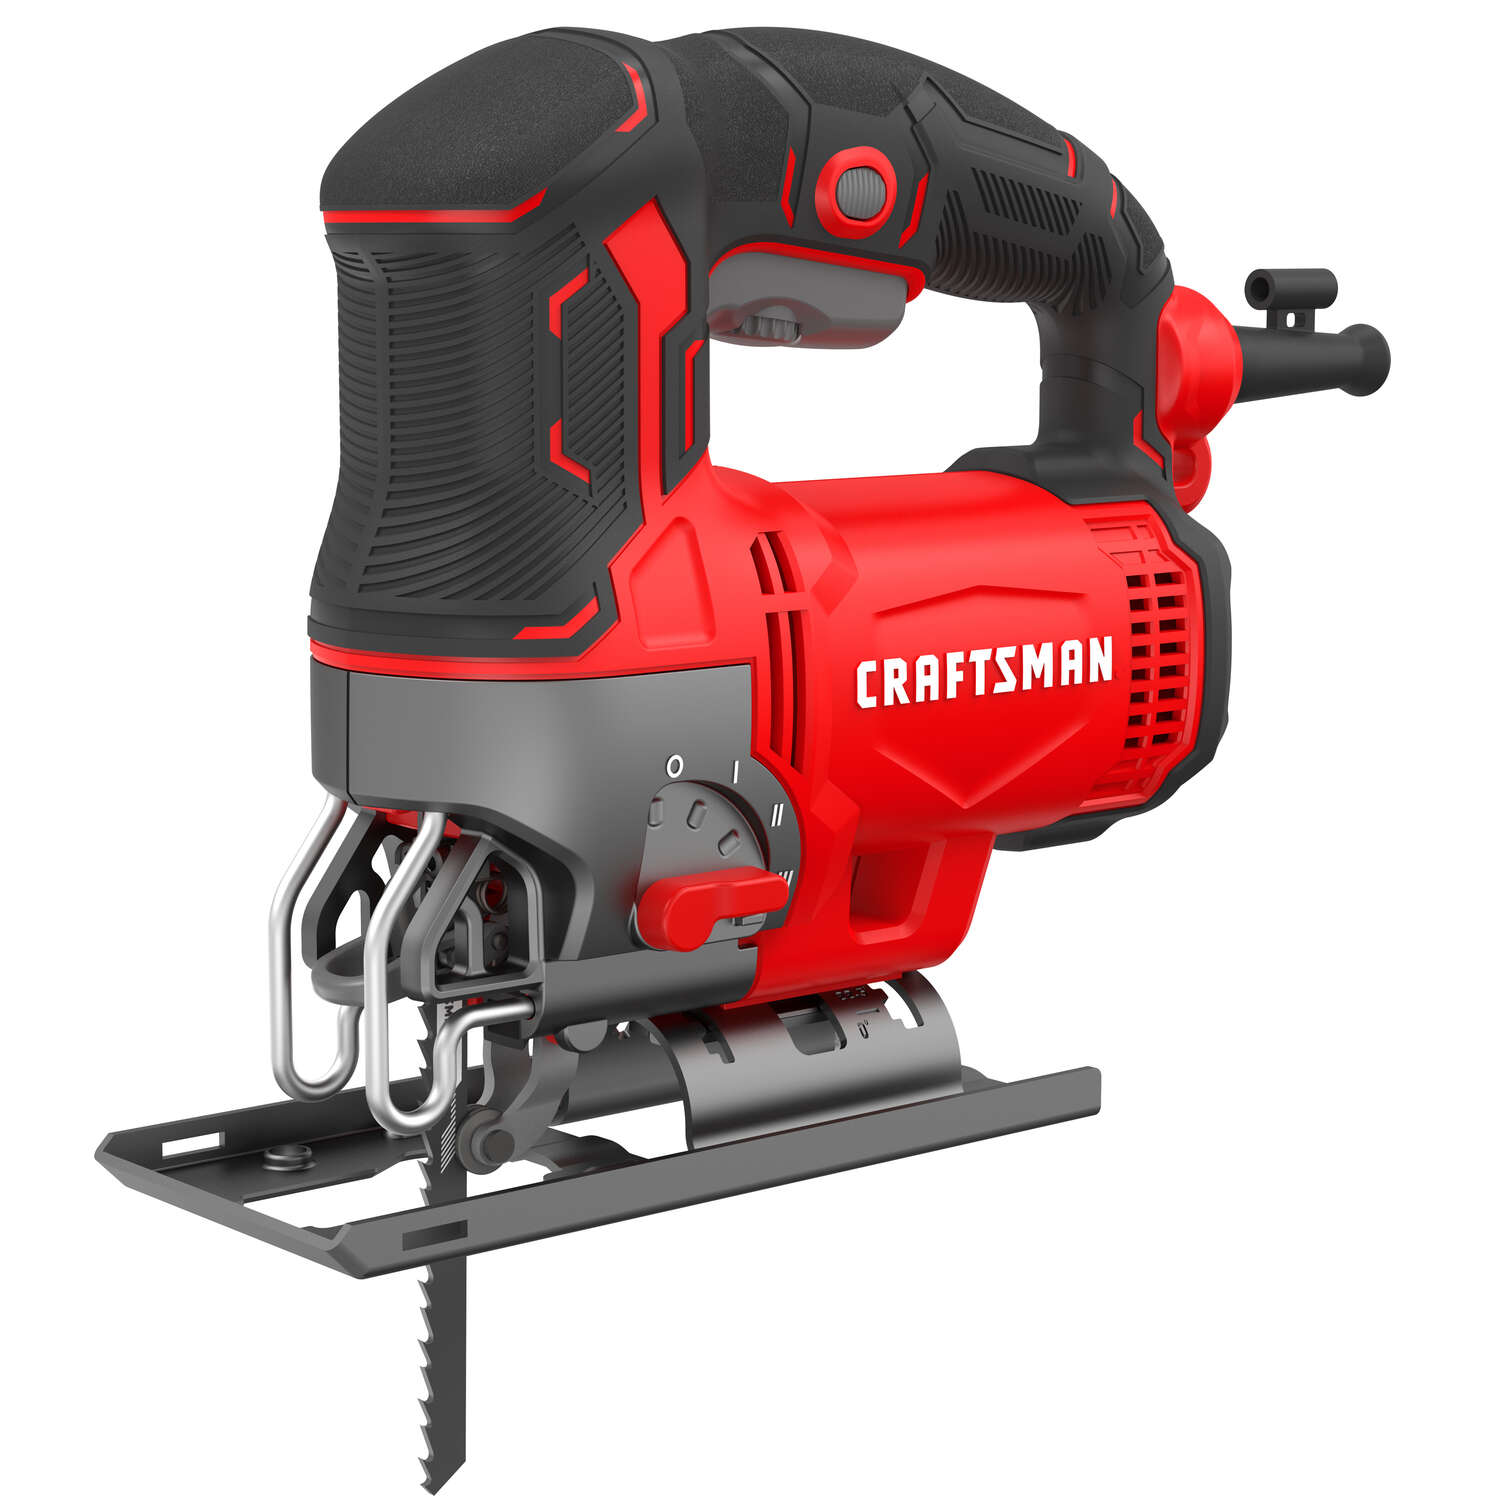 Craftsman 6 amps Corded Jig Saw